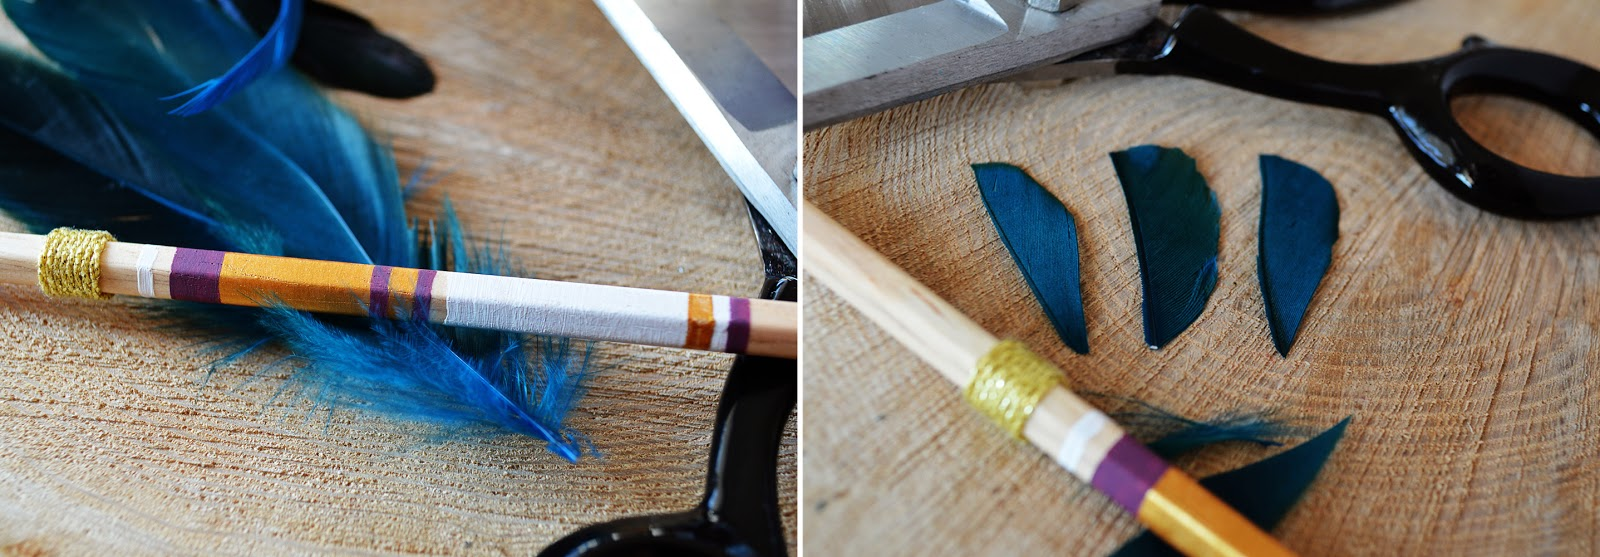 DIY Arrow Pencils | Motte's Blog